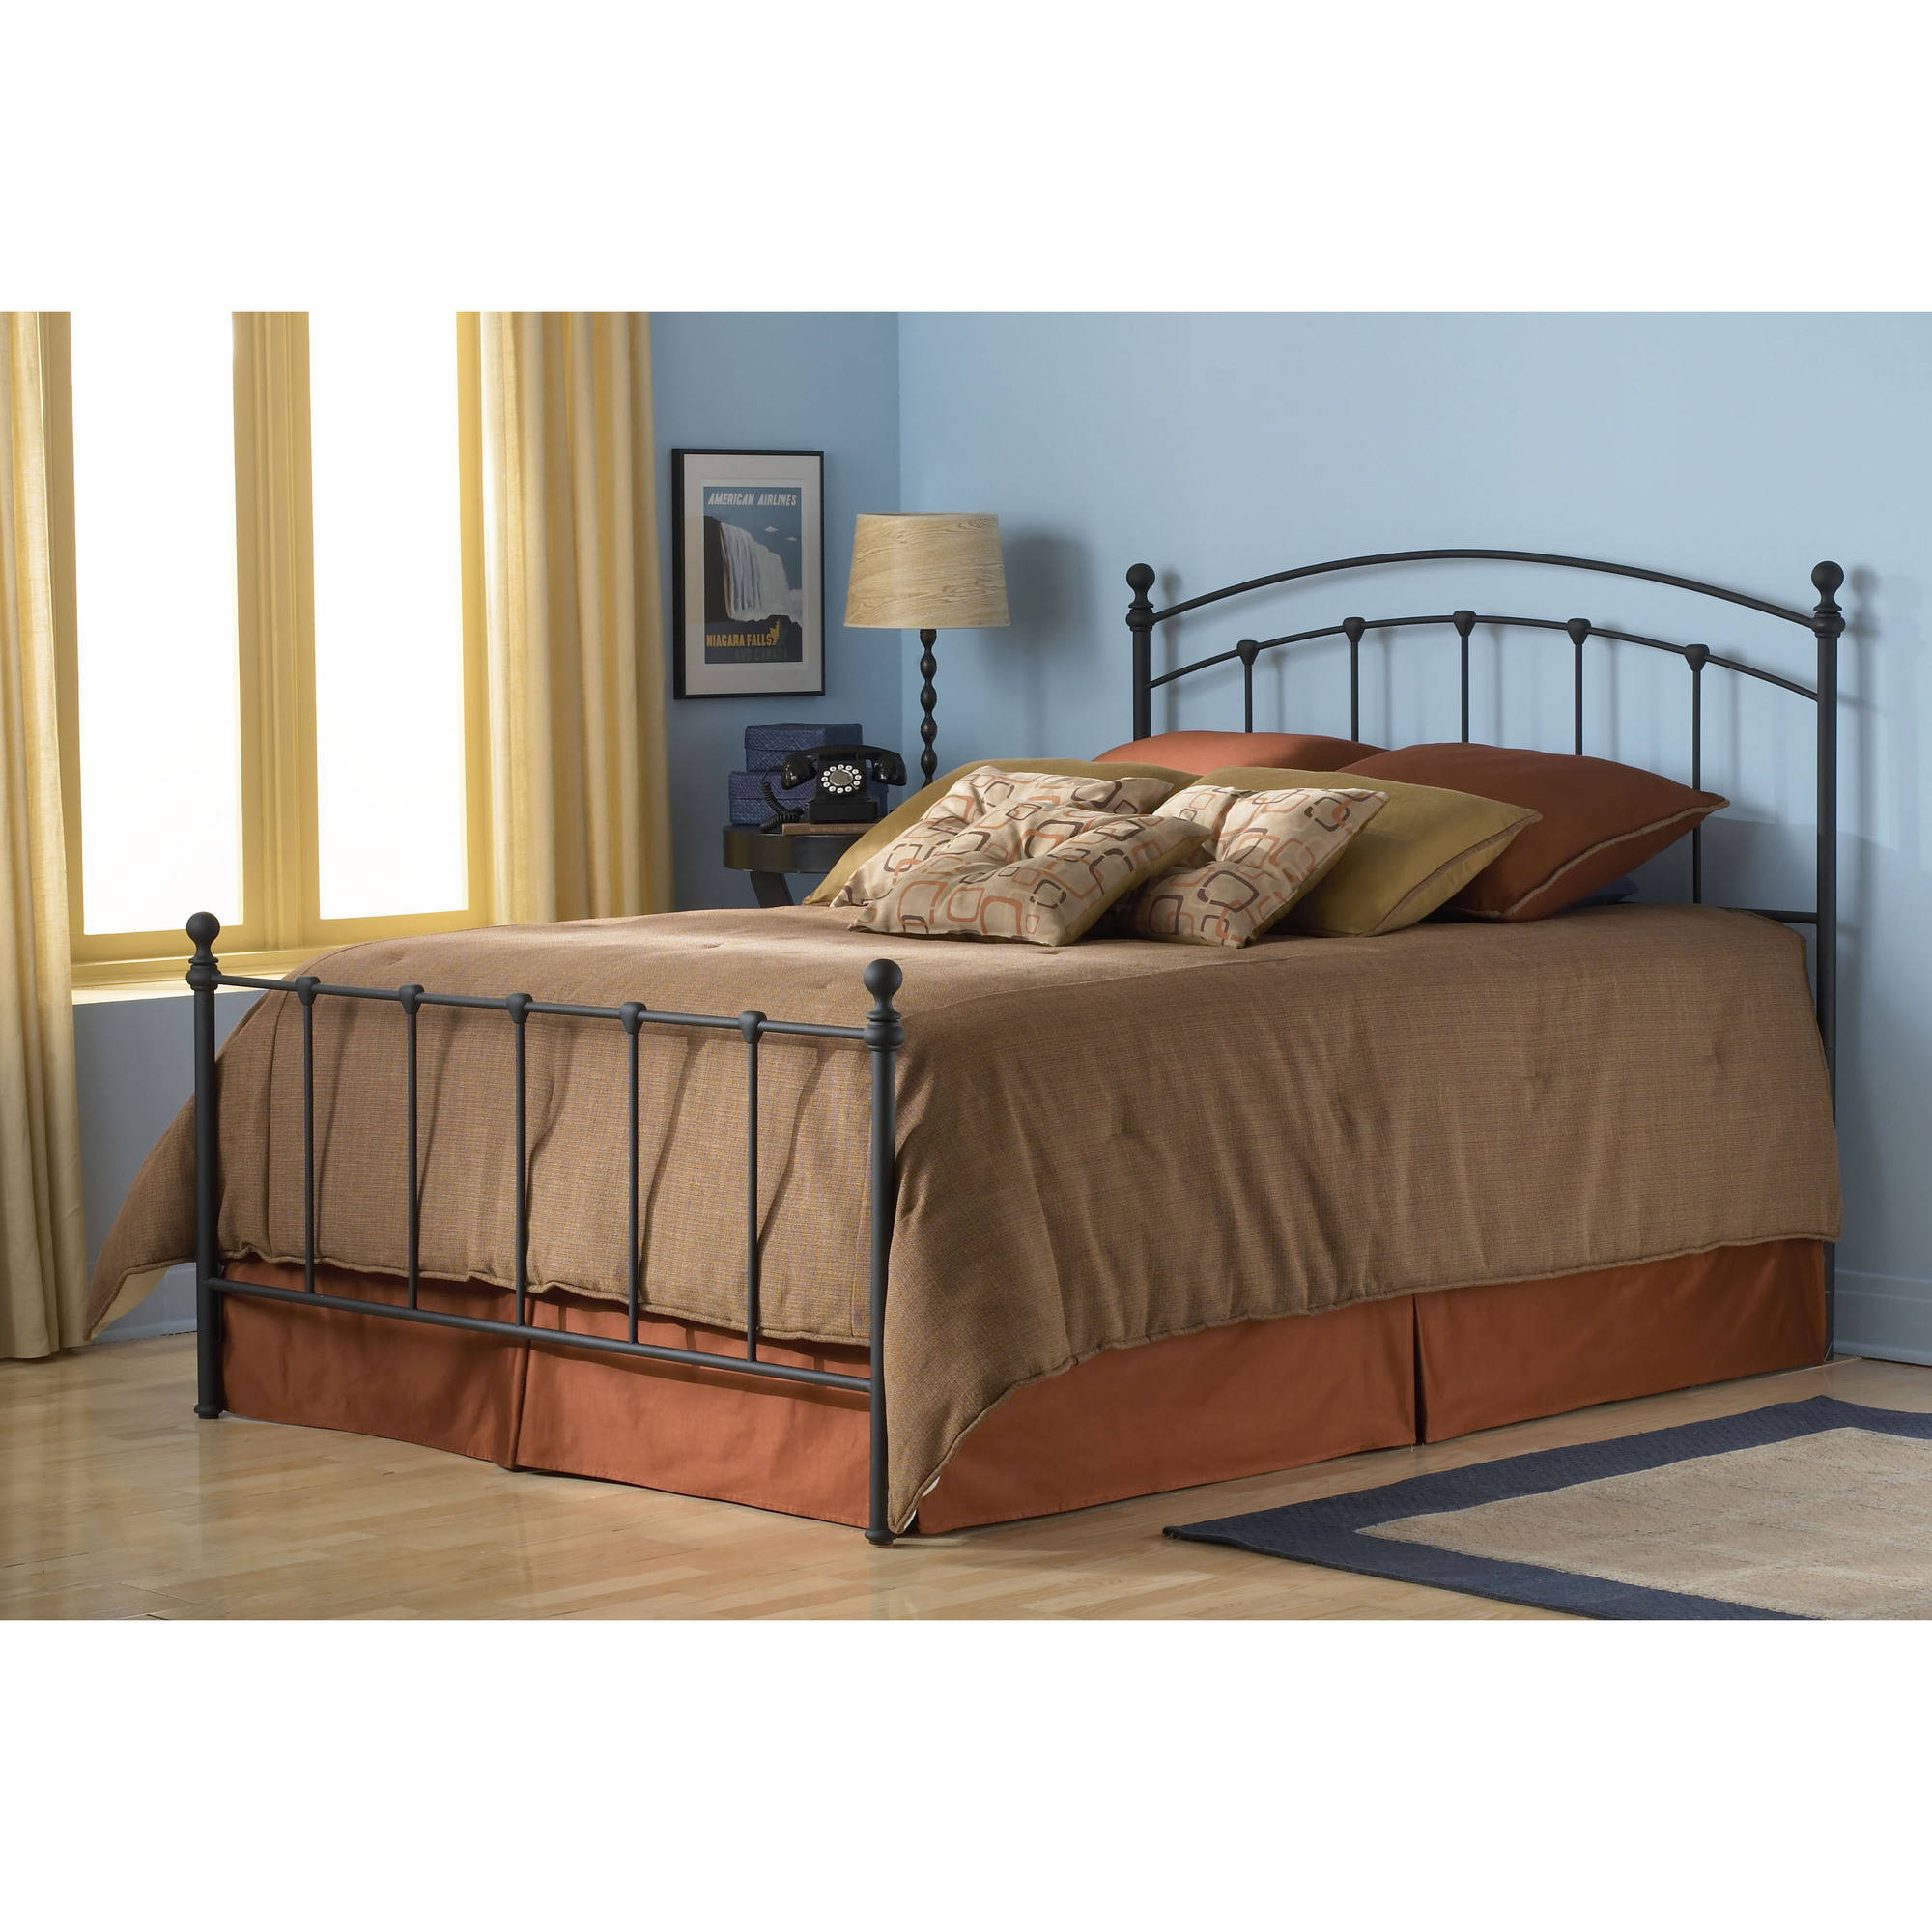 Fashion Bed Group by Leggett & Platt Sanford Matte Black Bed, Multiple Sizes